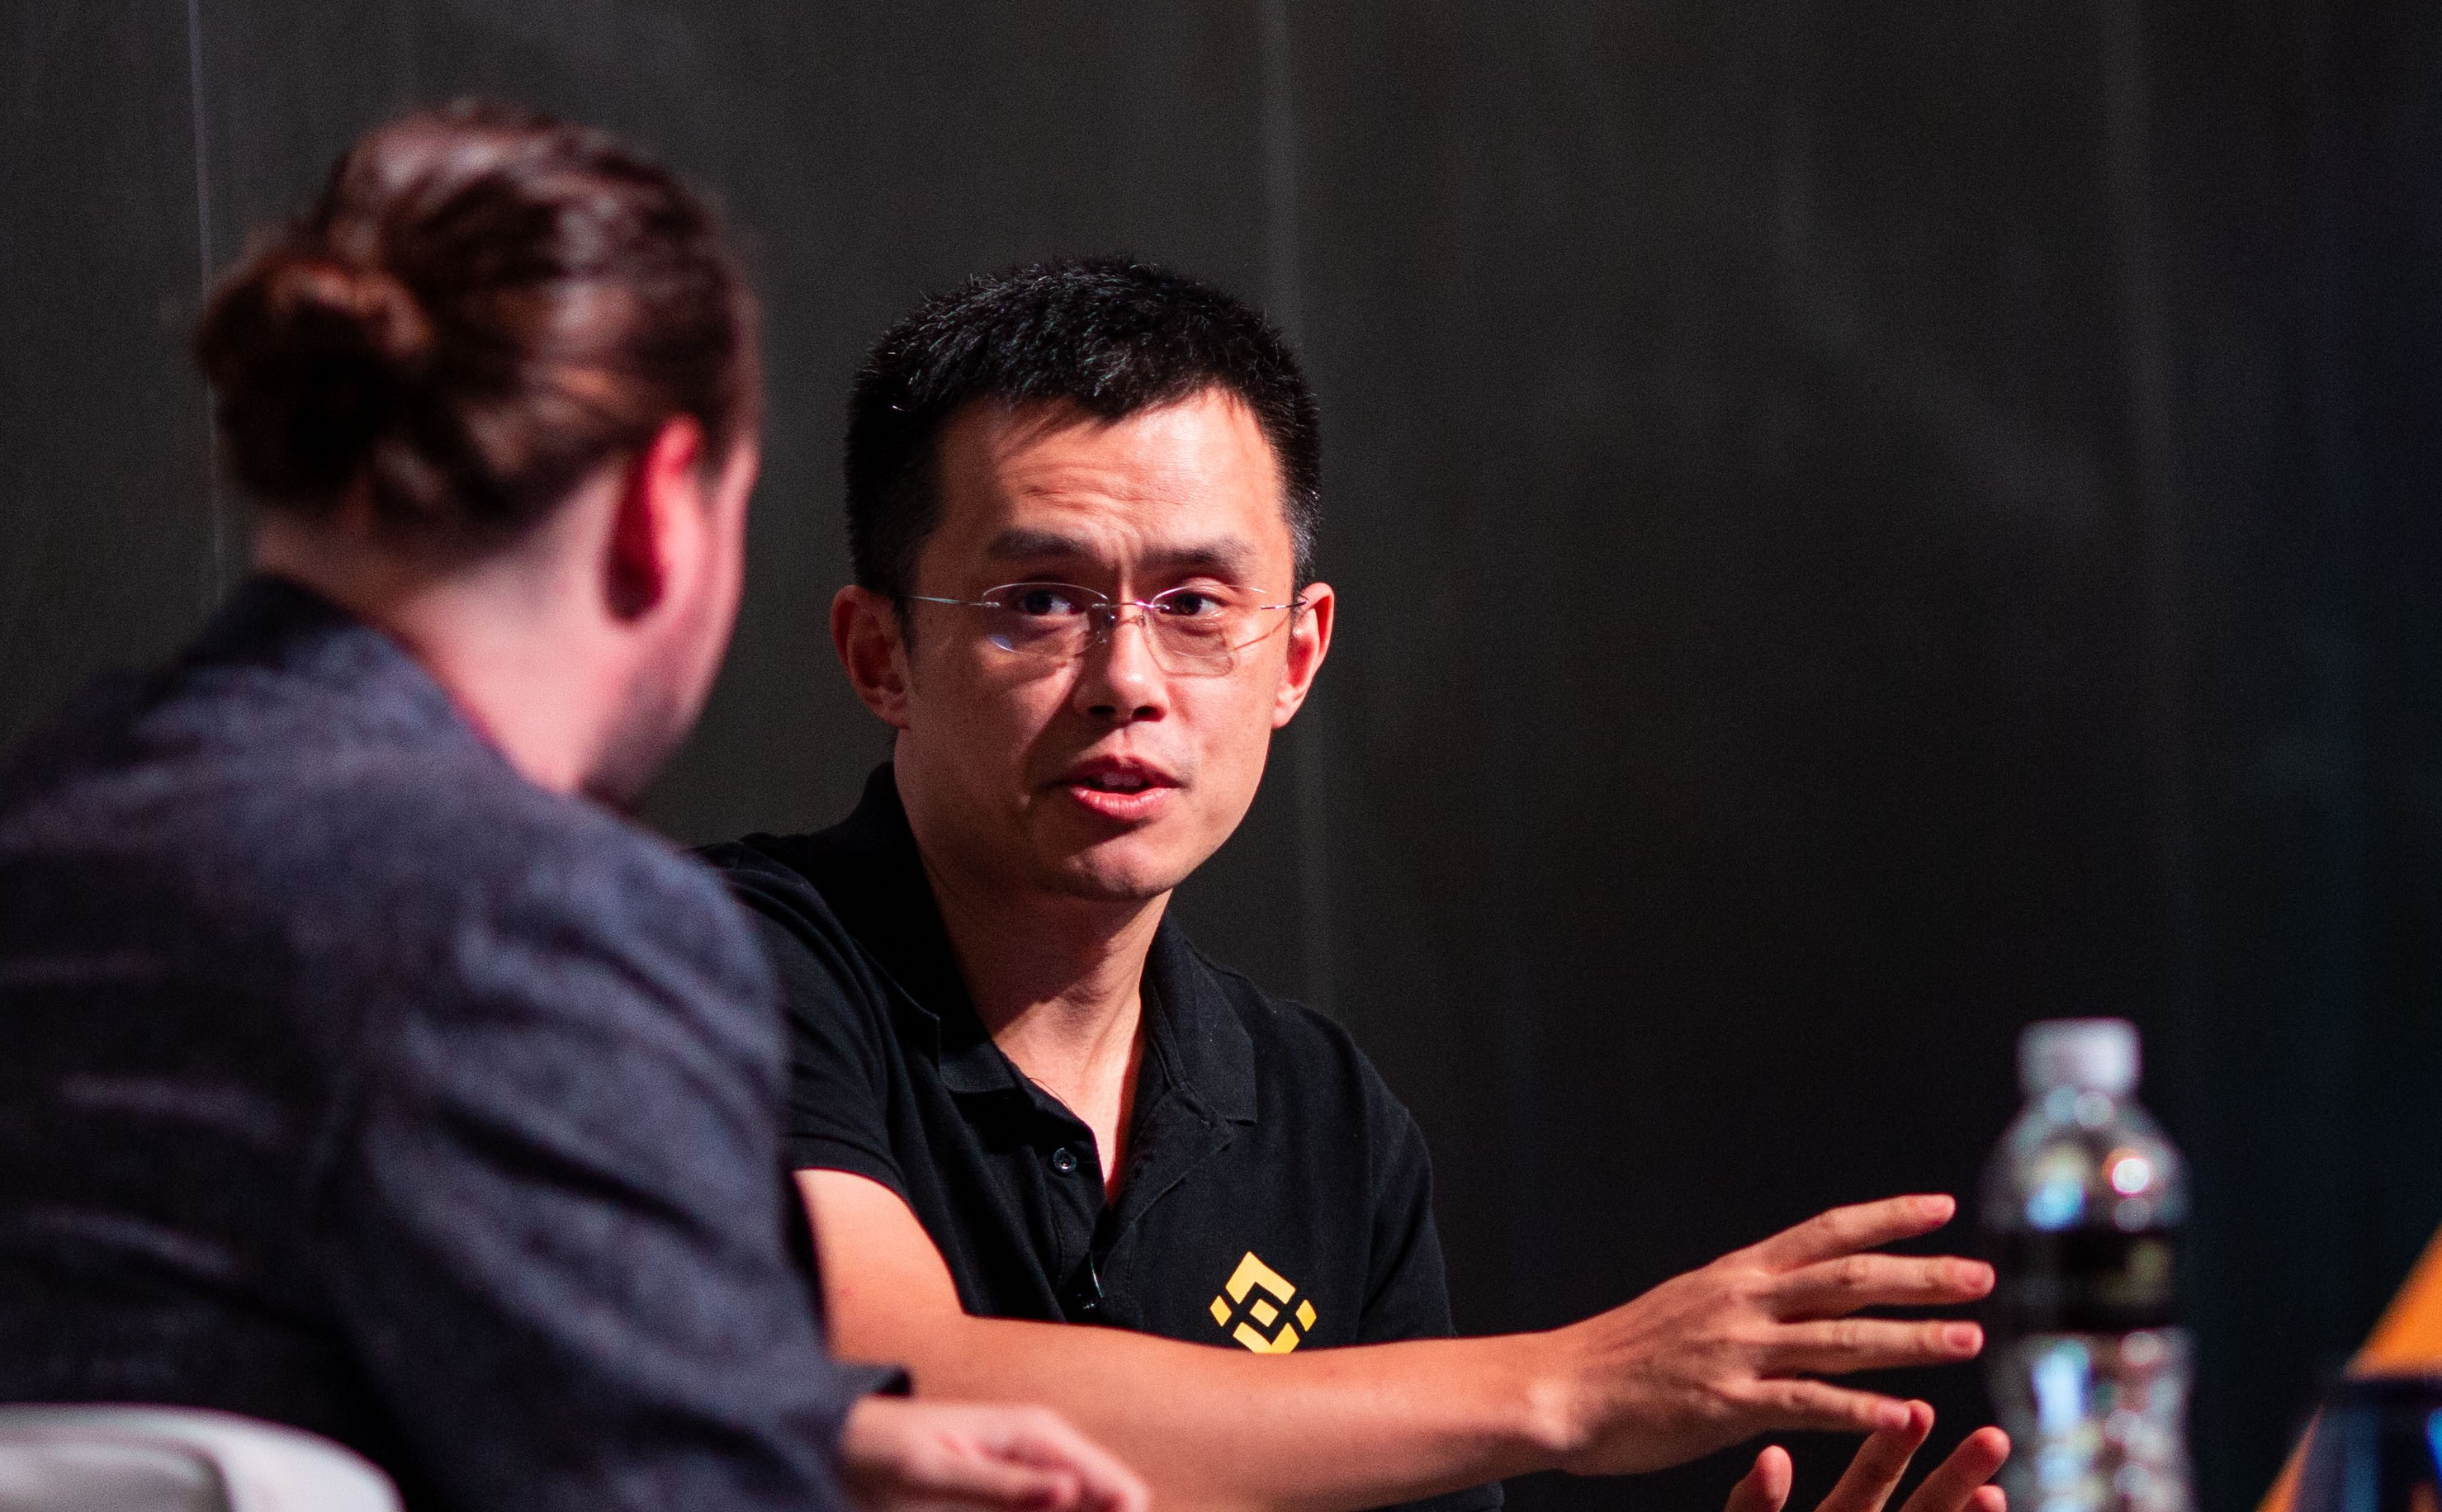 The Unbelievable Brilliance of Binance - CoinDesk